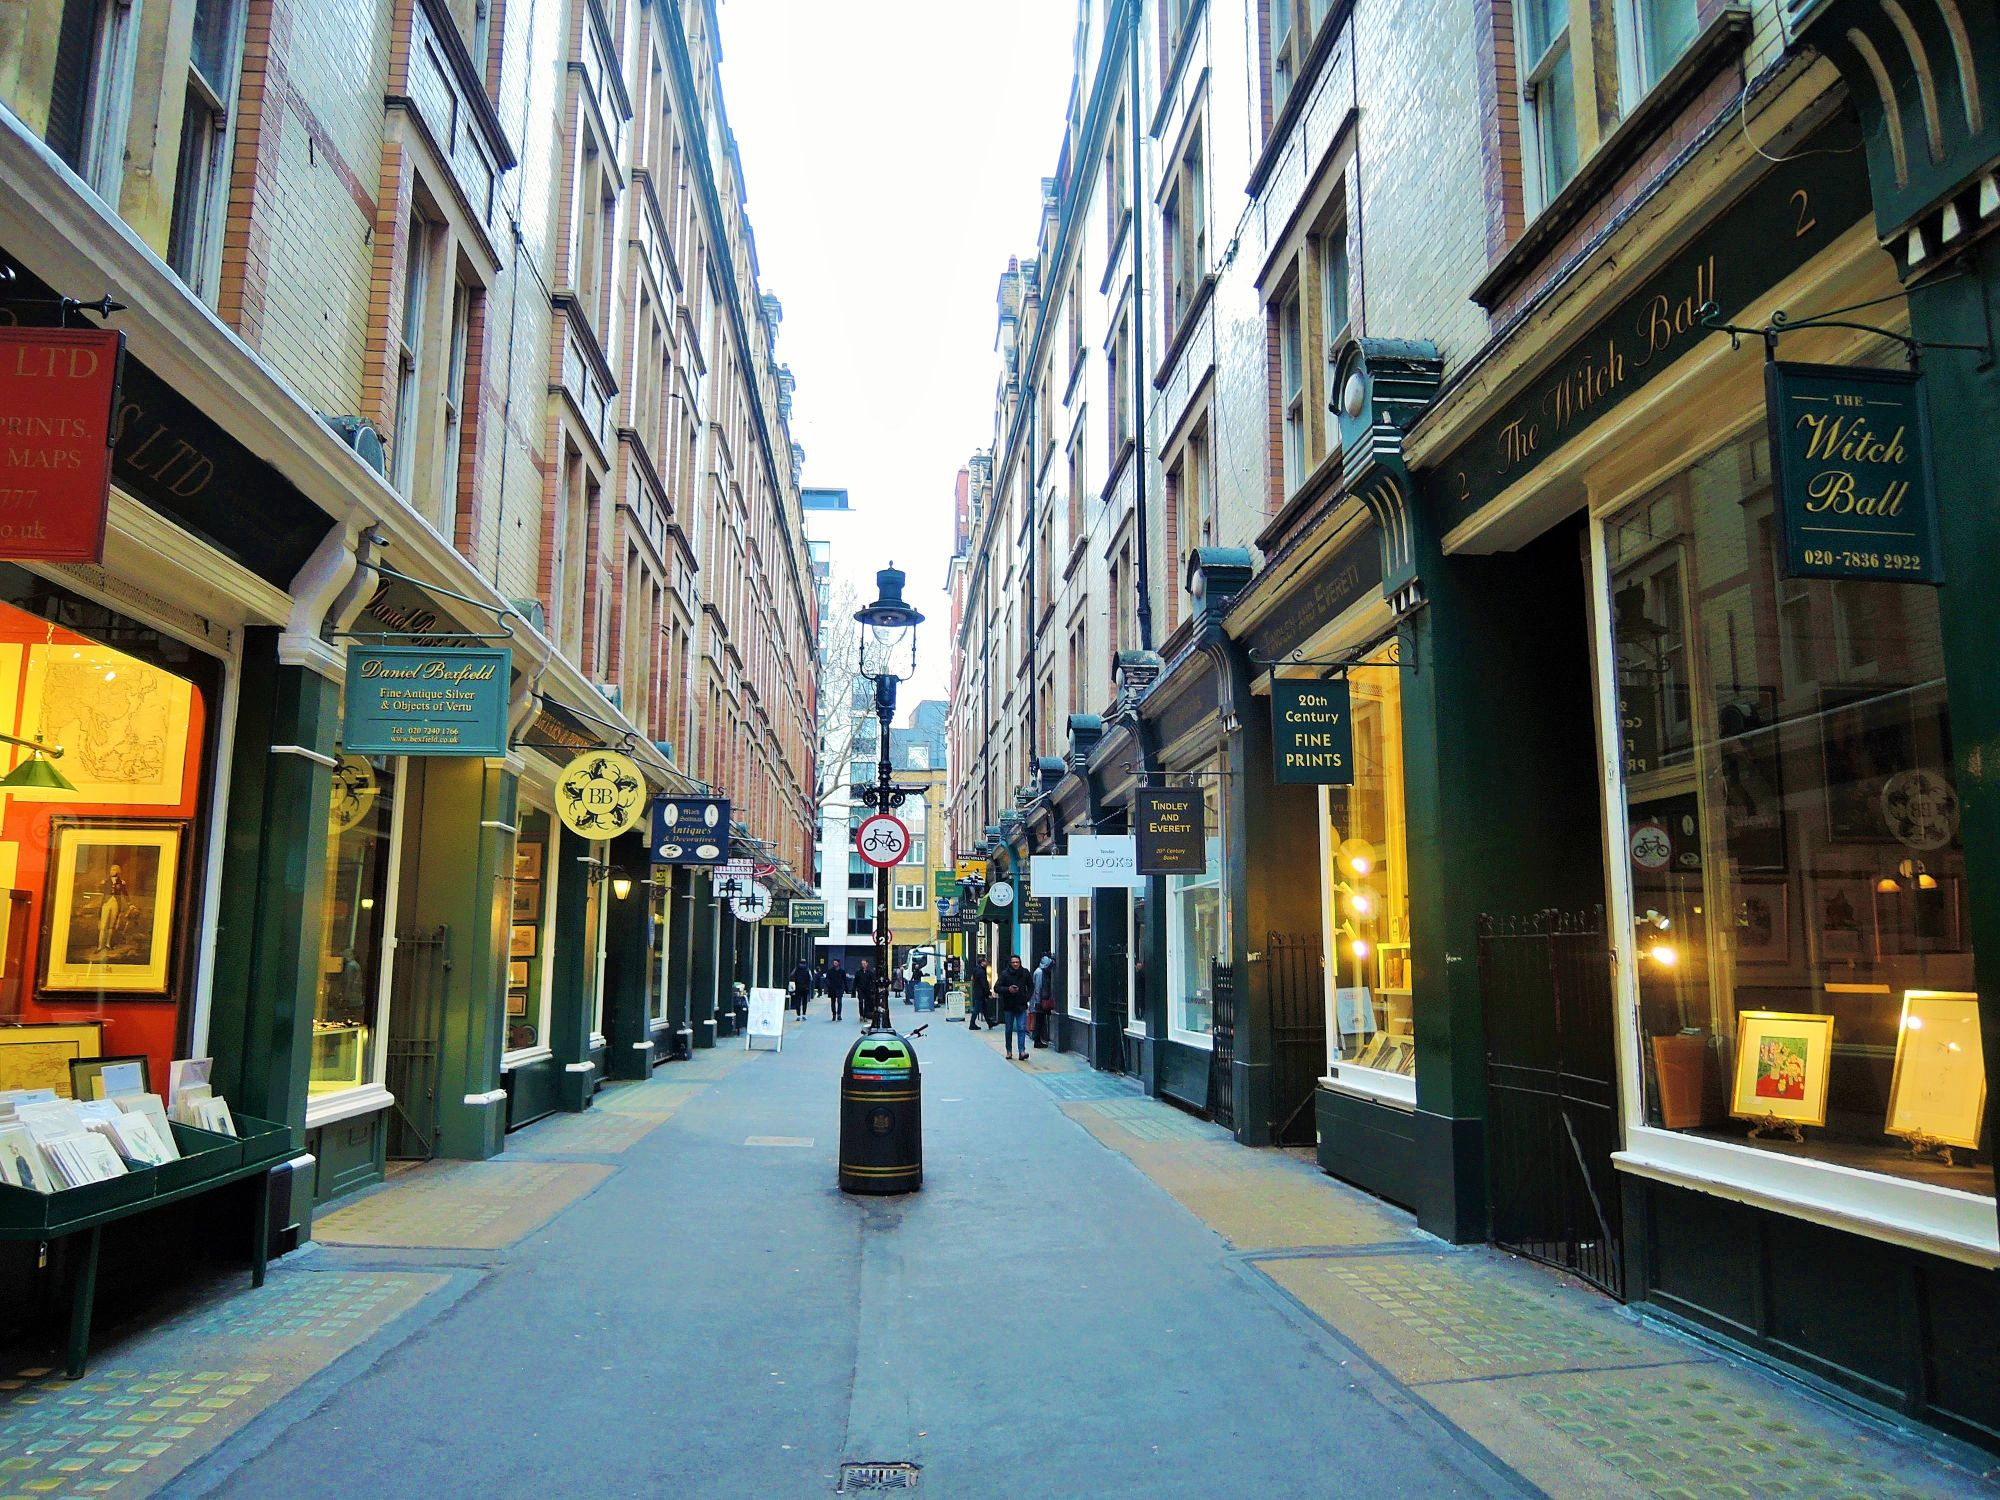 Photo of one of the hidden side streets in Westminster. This padestrian street has book and antique shops.